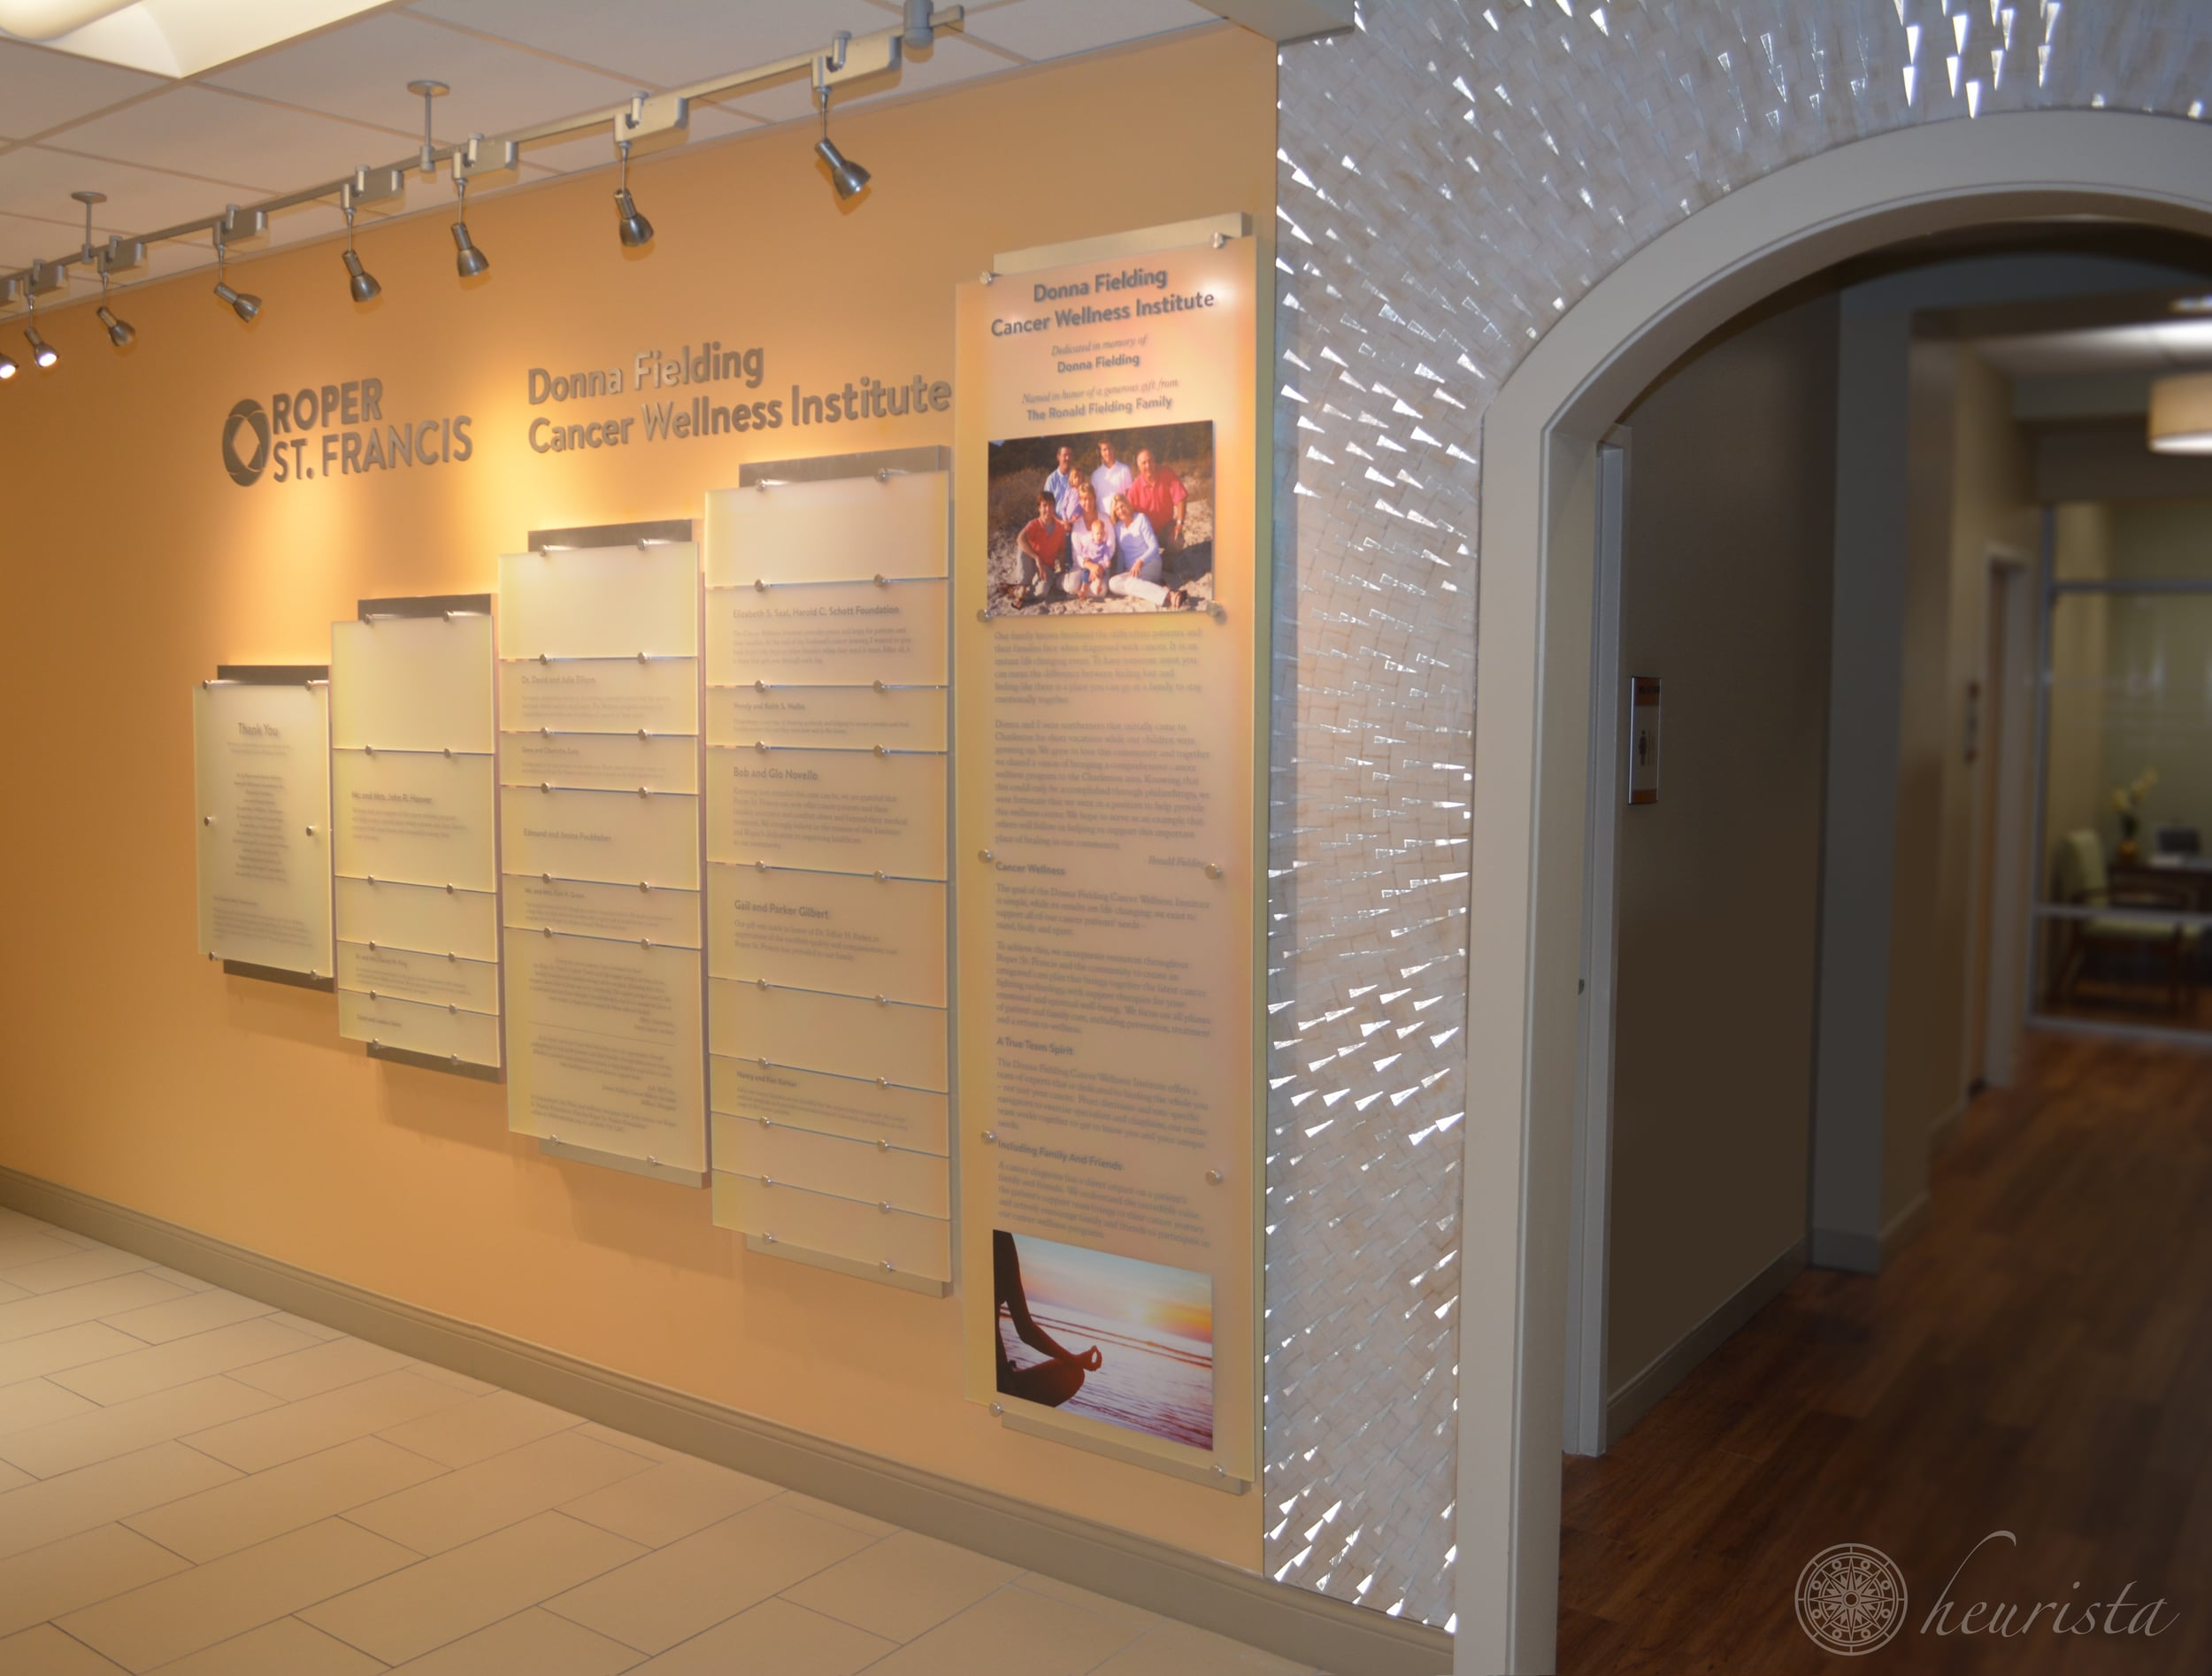 Donor Recognition Wall,Roper St. Francis: Donna Fielding Cancer Wellness Institute